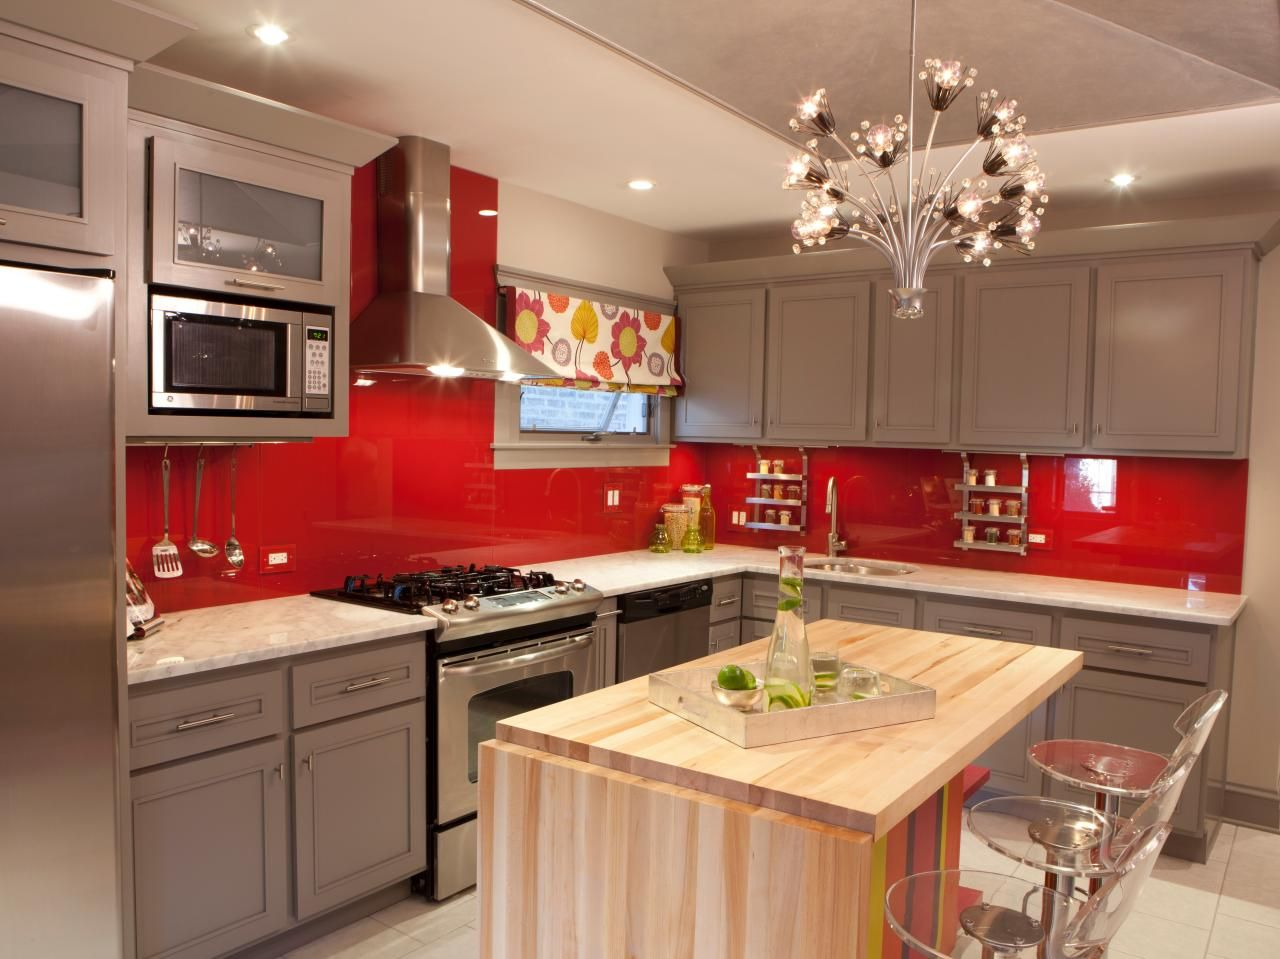 Red And Gray Kitchen Ideas Part - 26: 25 Colorful Kitchens | Kitchen Ideas U0026 Design With Cabinets, Islands,  Backsplashes | HGTV